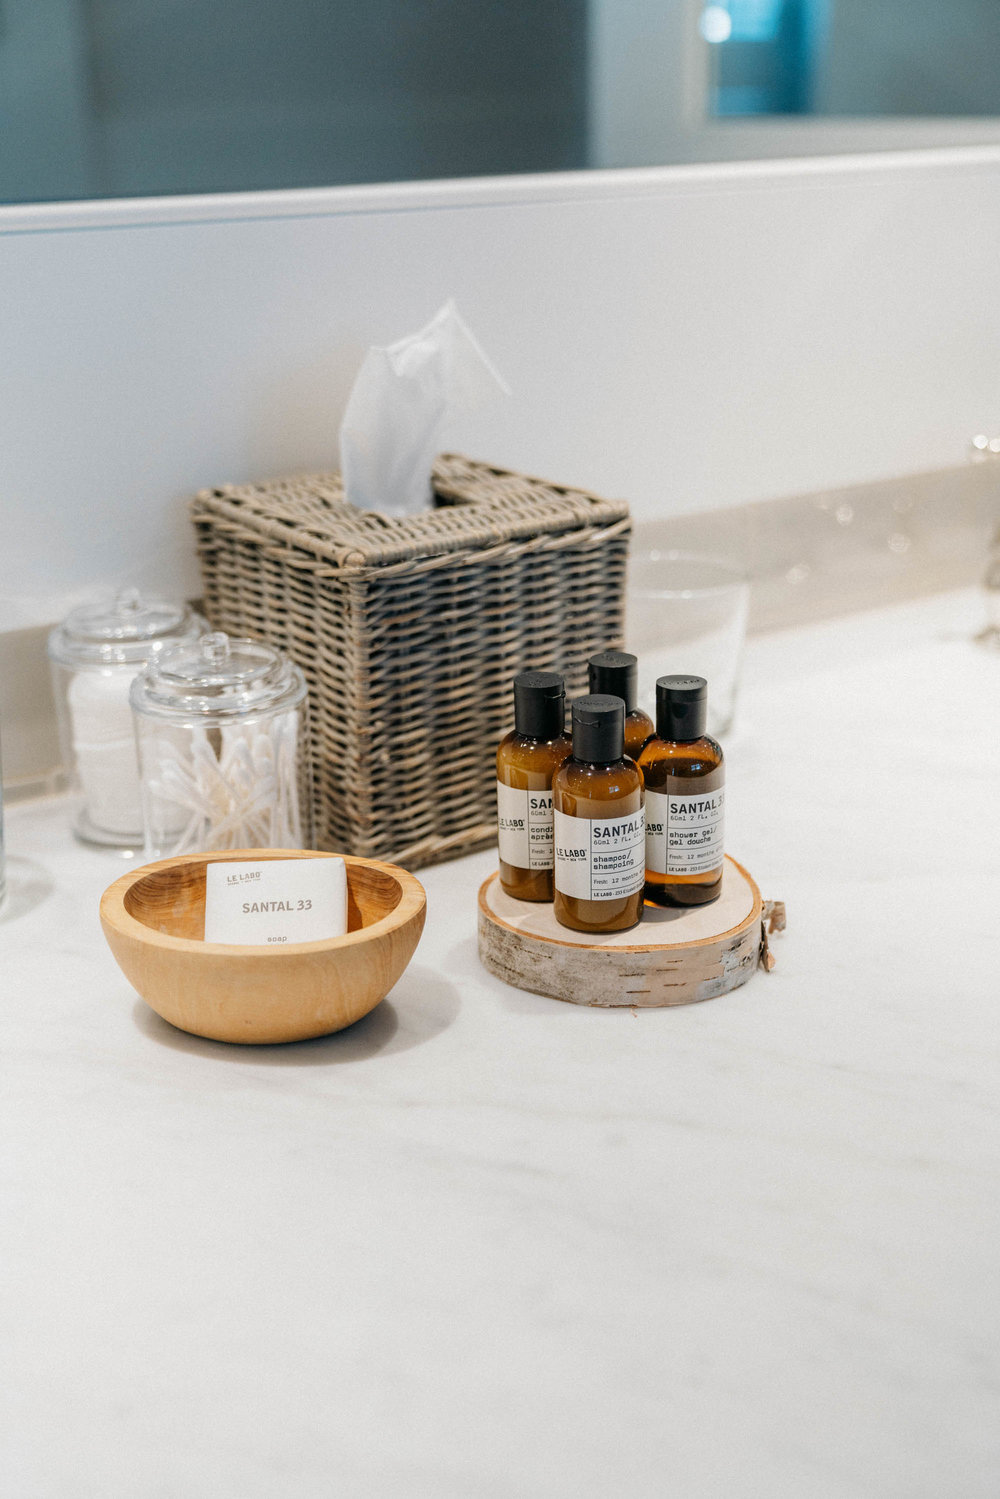 Le Labo toiletries in one of my favorite scents Santal 33!